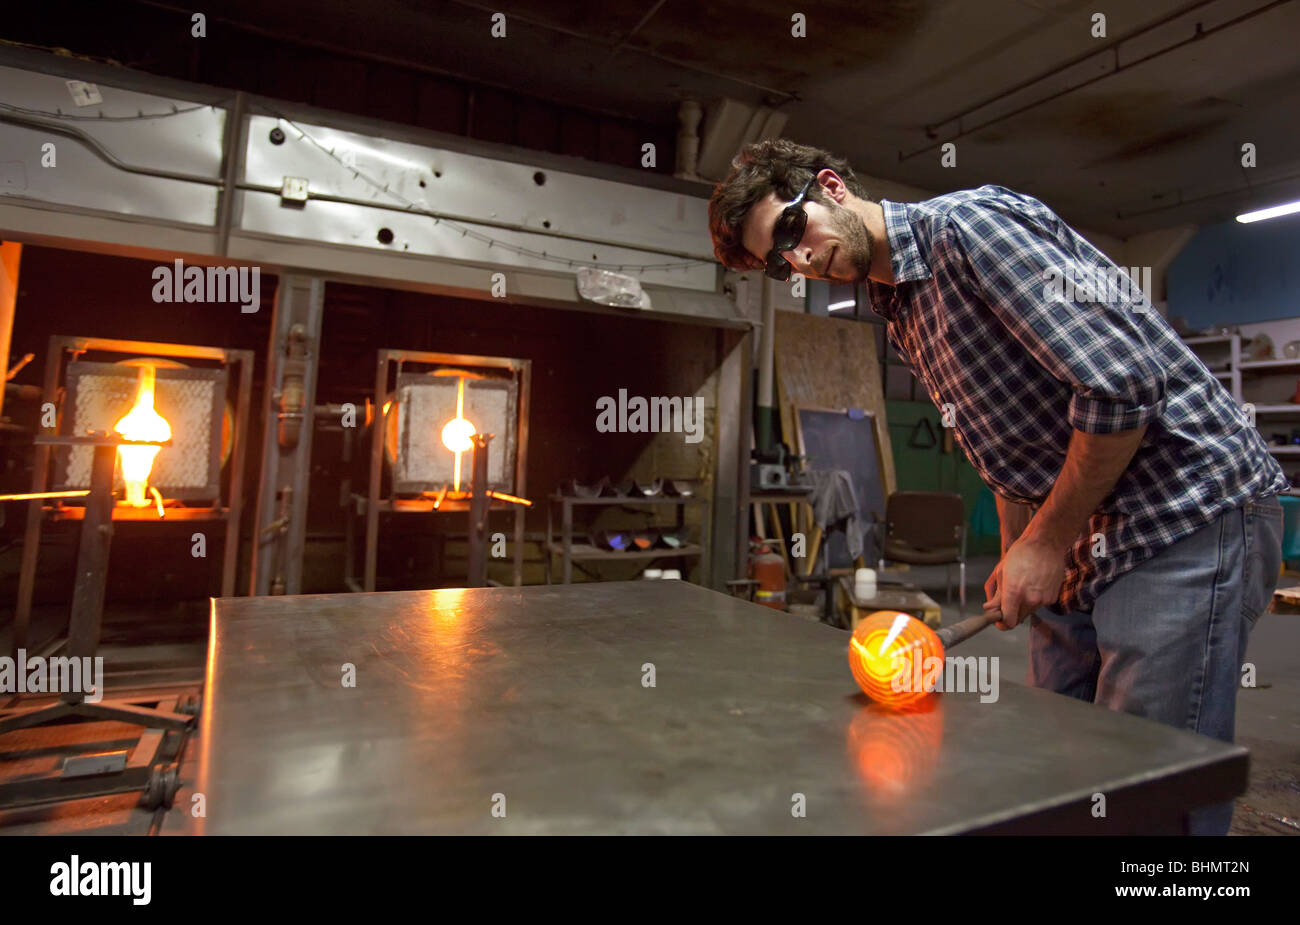 Detroit, Michigan - Paul Abowd works on a glass bowl at the Michigan Hot Glass Workshop. - Stock Image